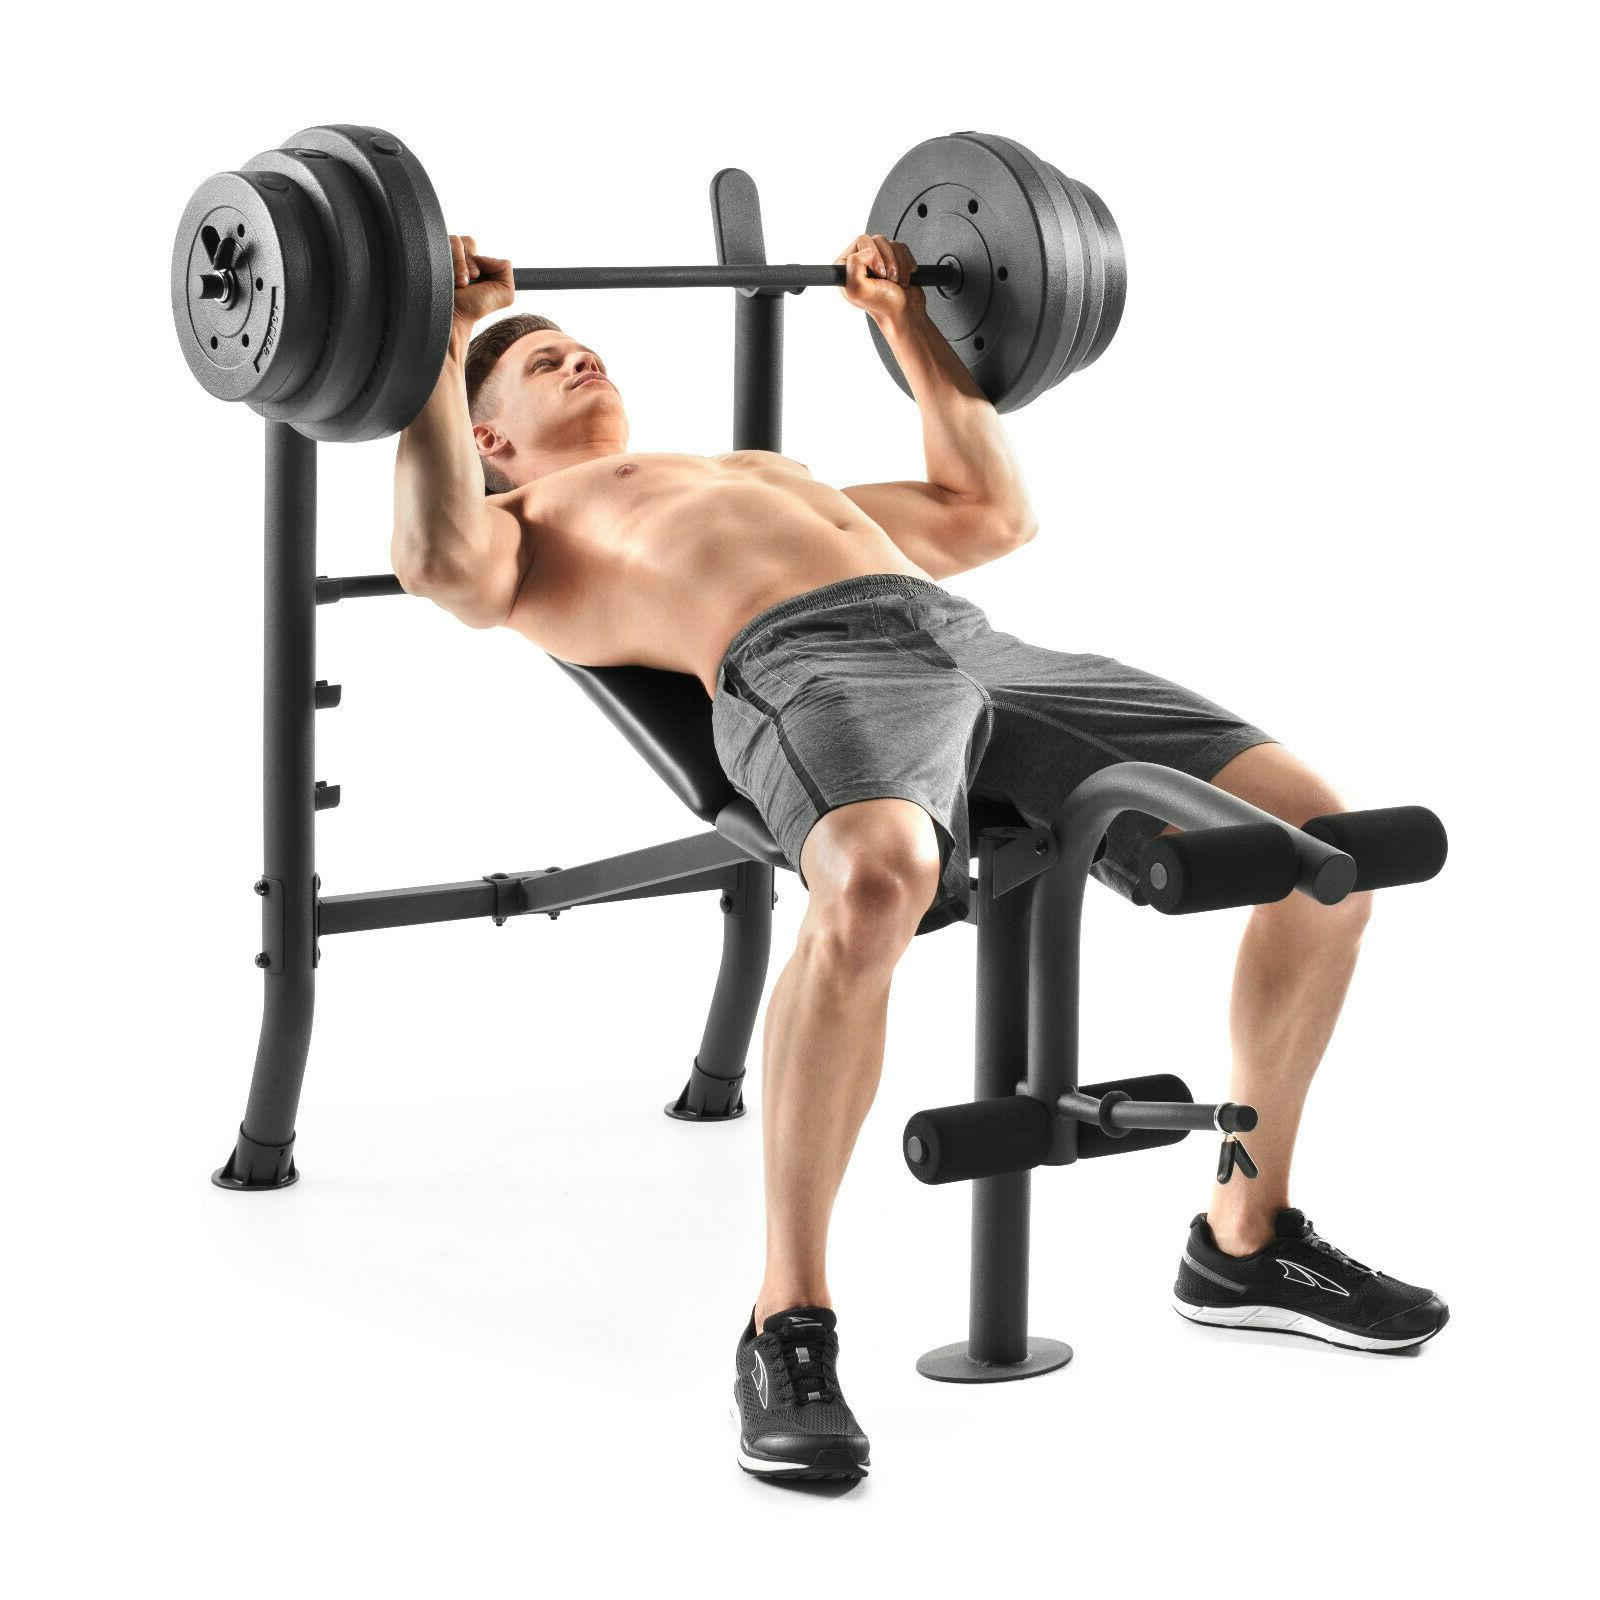 ADJUSTABLE LIFTING SET With Weights And Bar 100 Flat